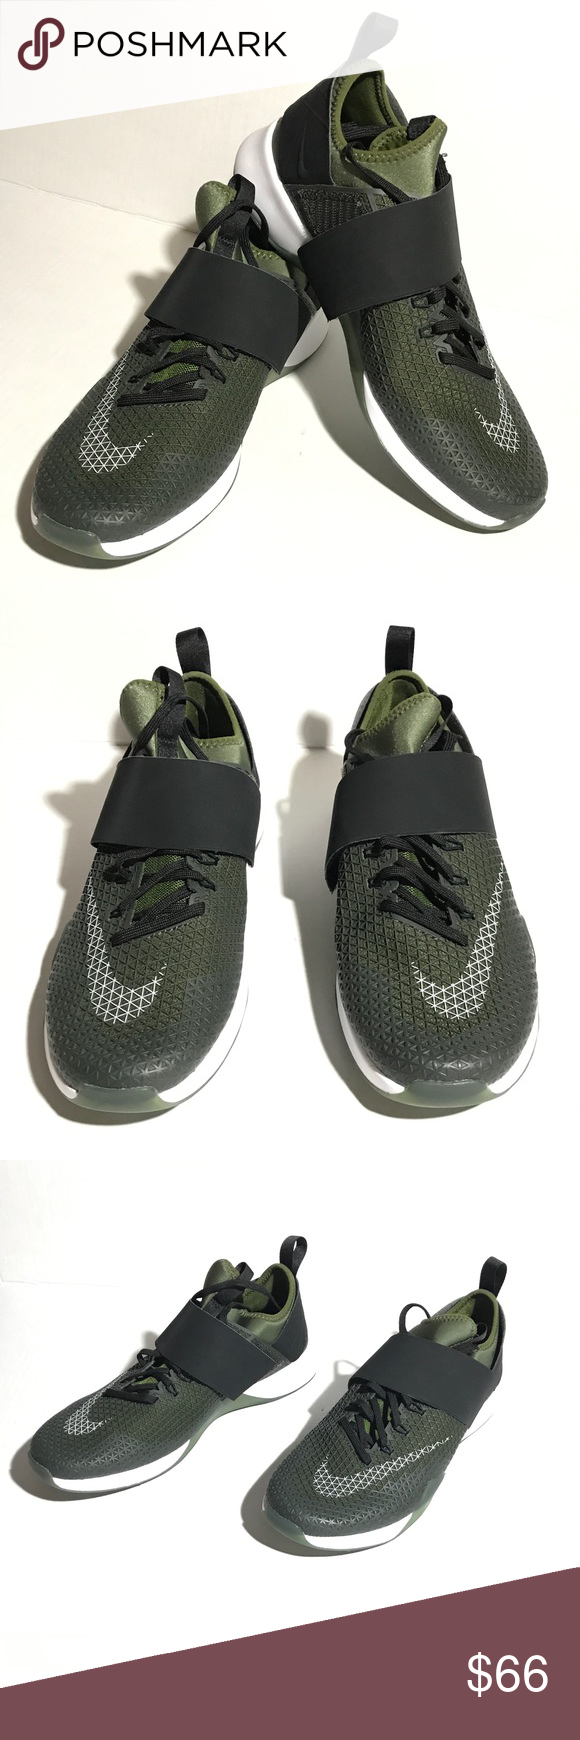 New women's Nike Air Zoom Strong CrossFit Trainer Nike Air